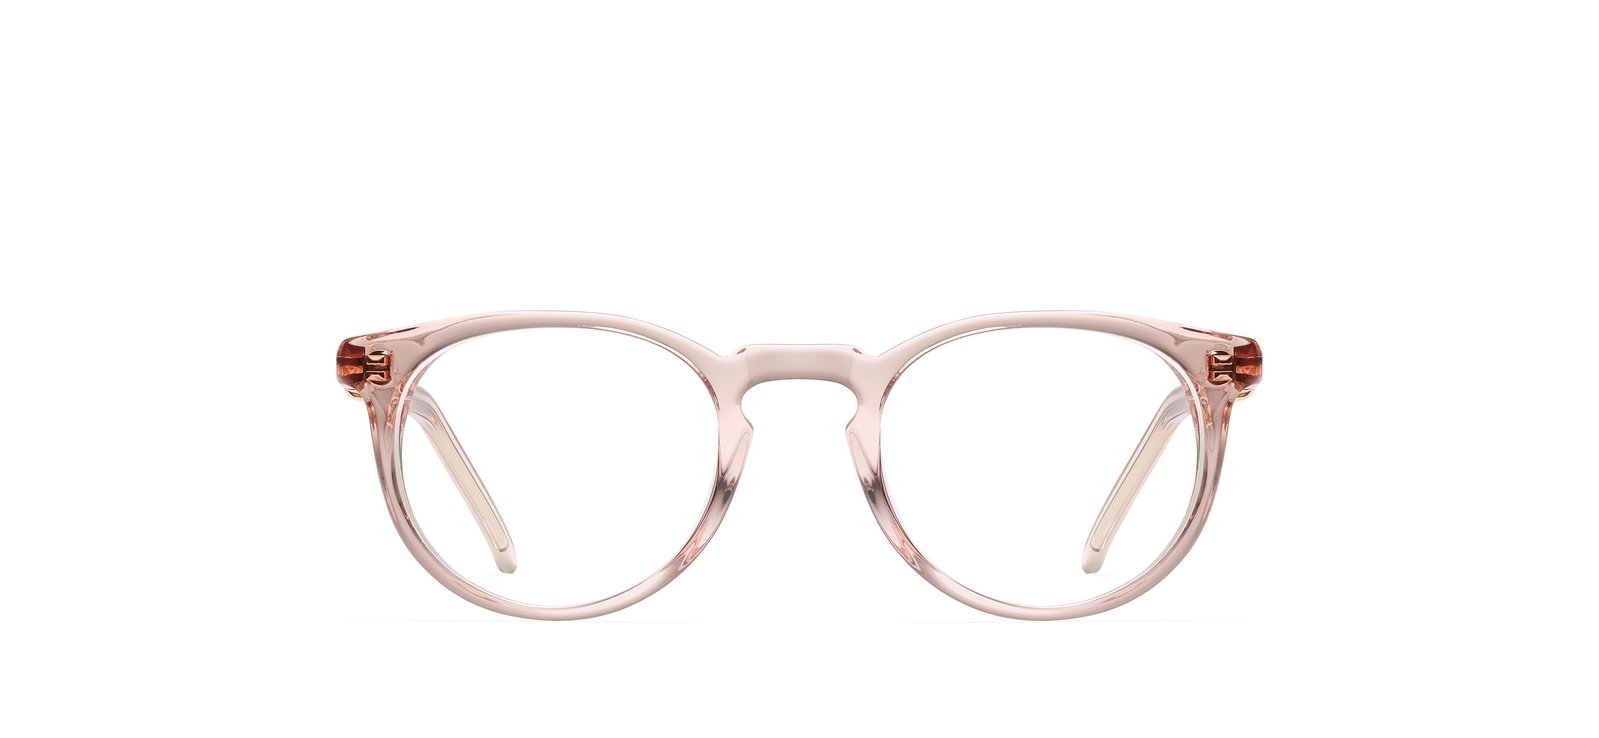 Robert Marc eyewear